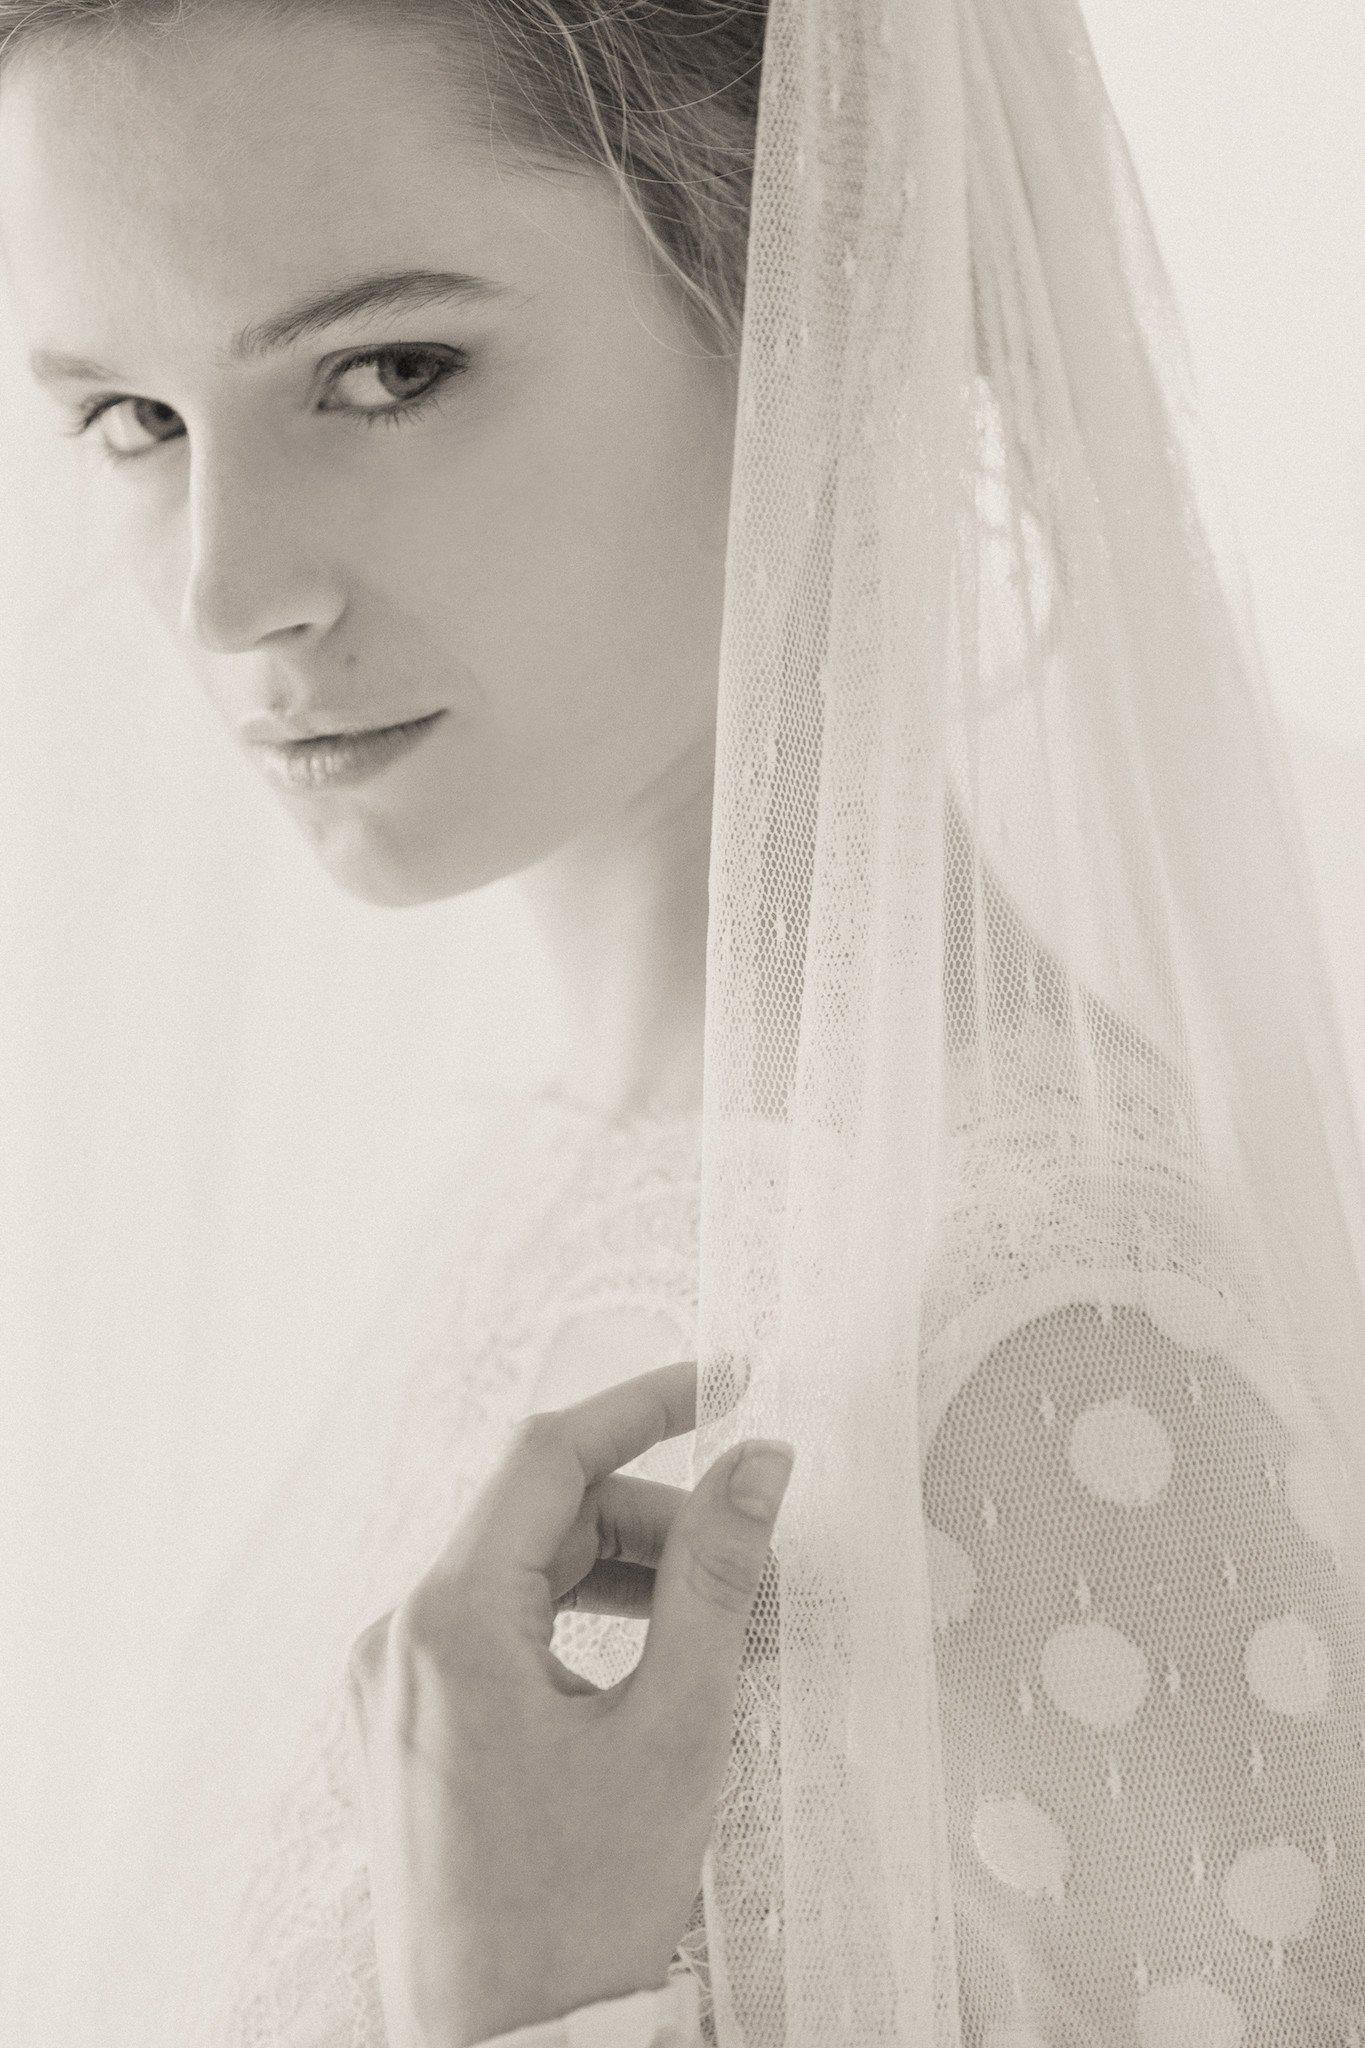 Polka dot wedding veil - 'Dot'